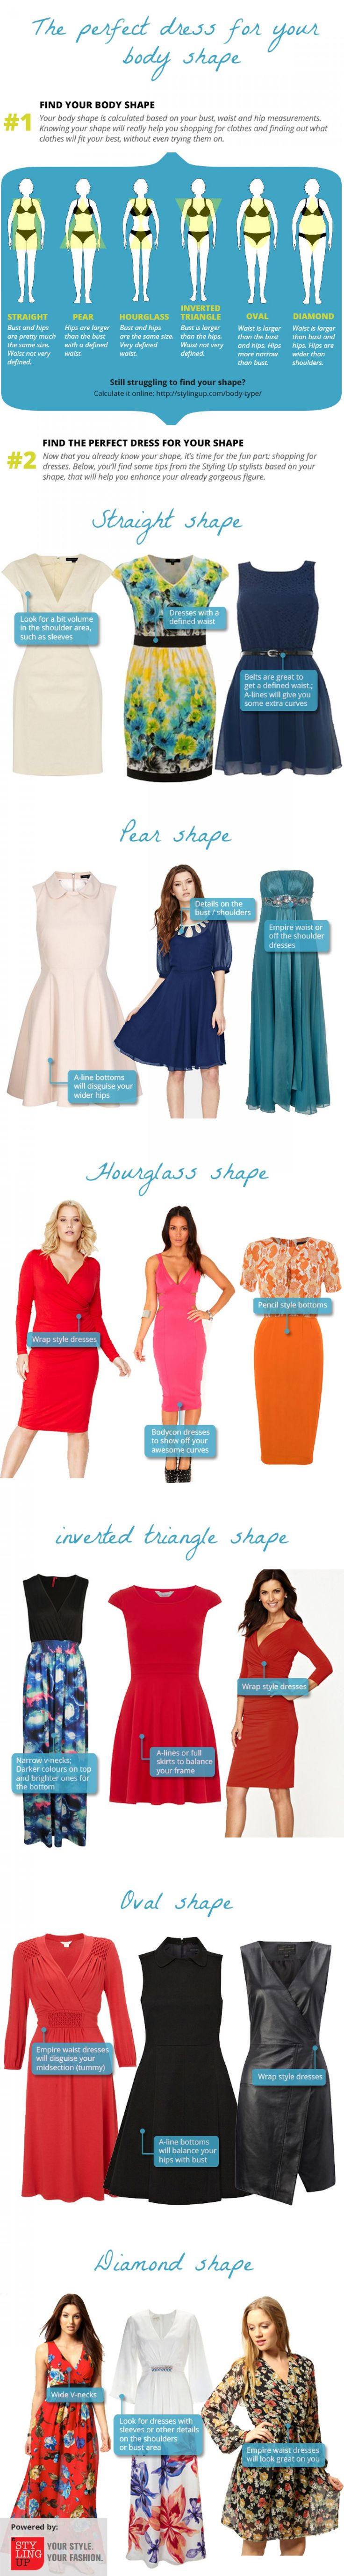 The Perfect Dress for your Body Shape Infographic